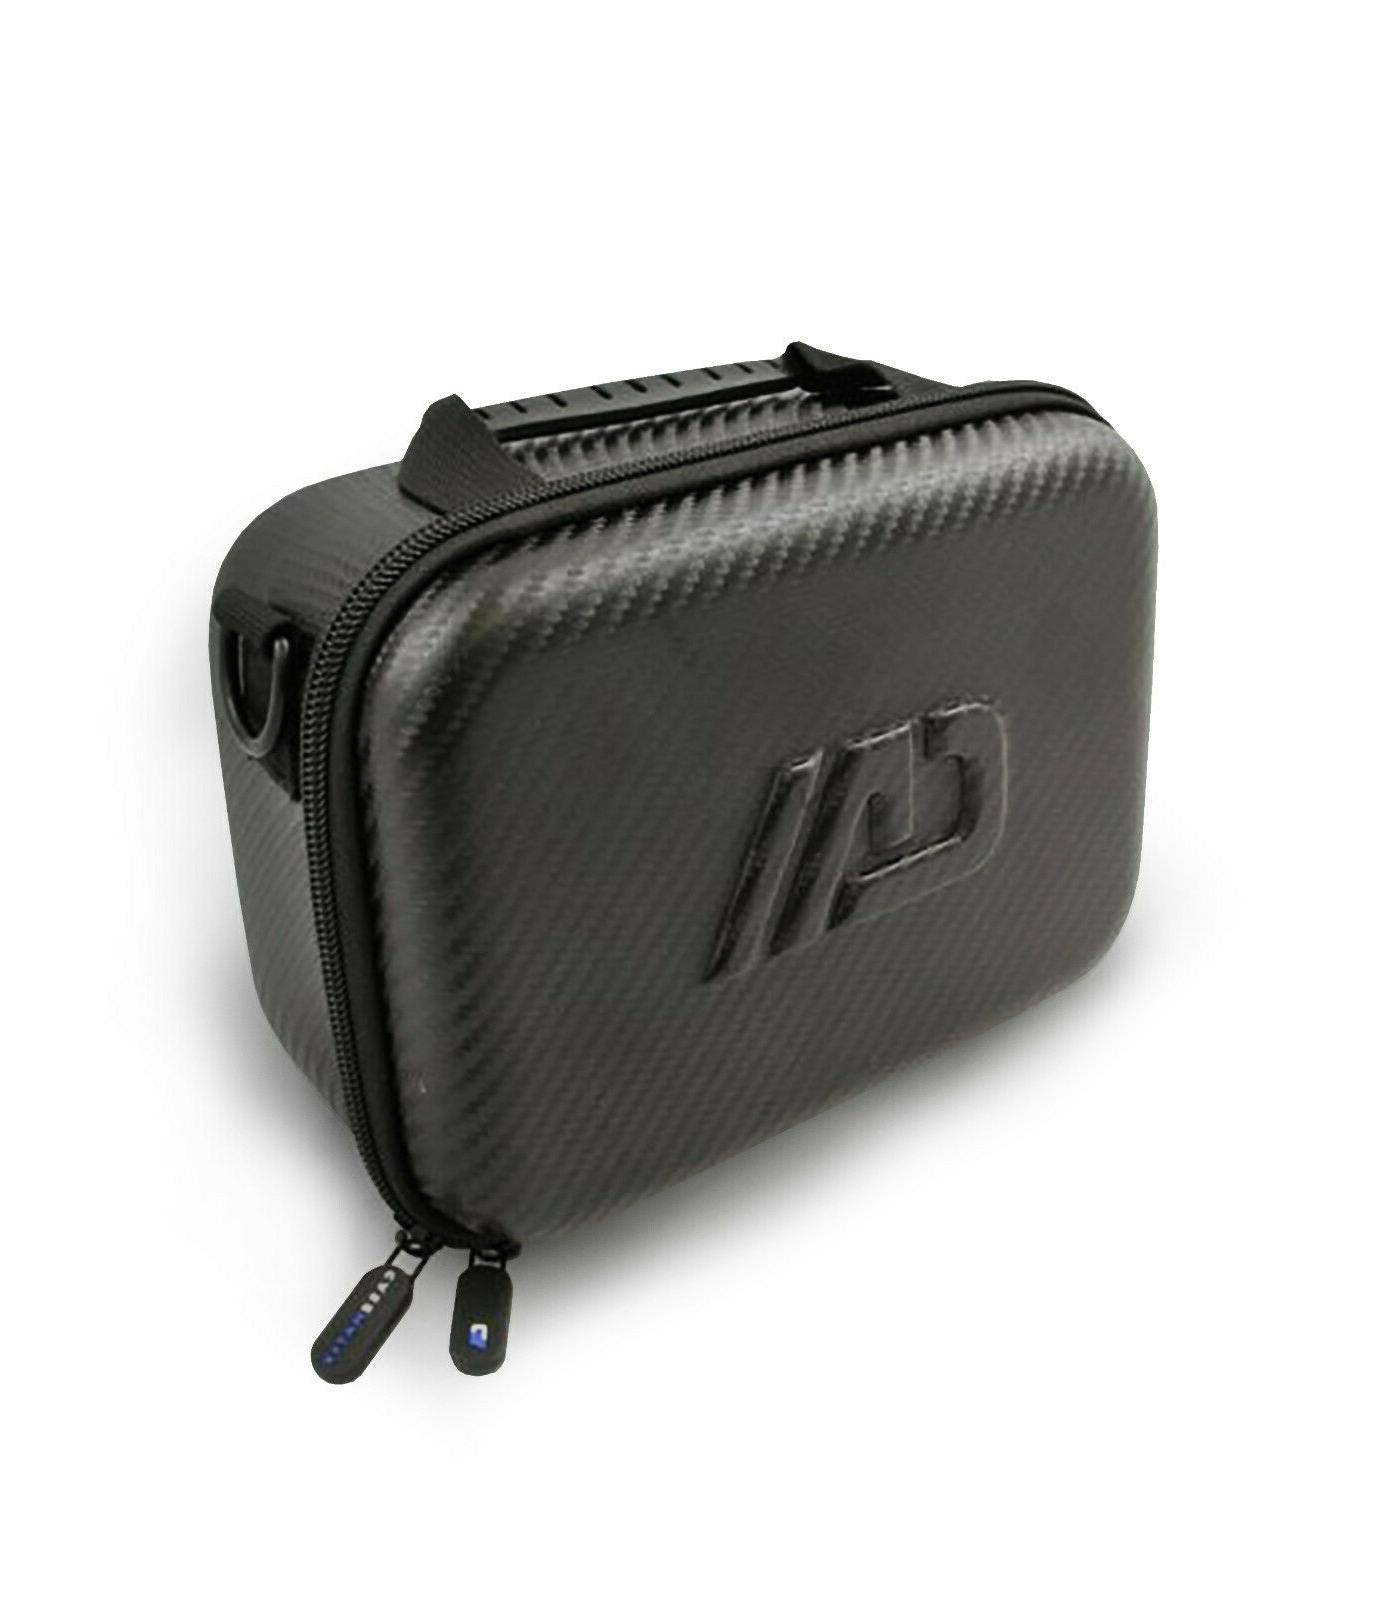 8 Inch Projector Case Projector Yg200 Included